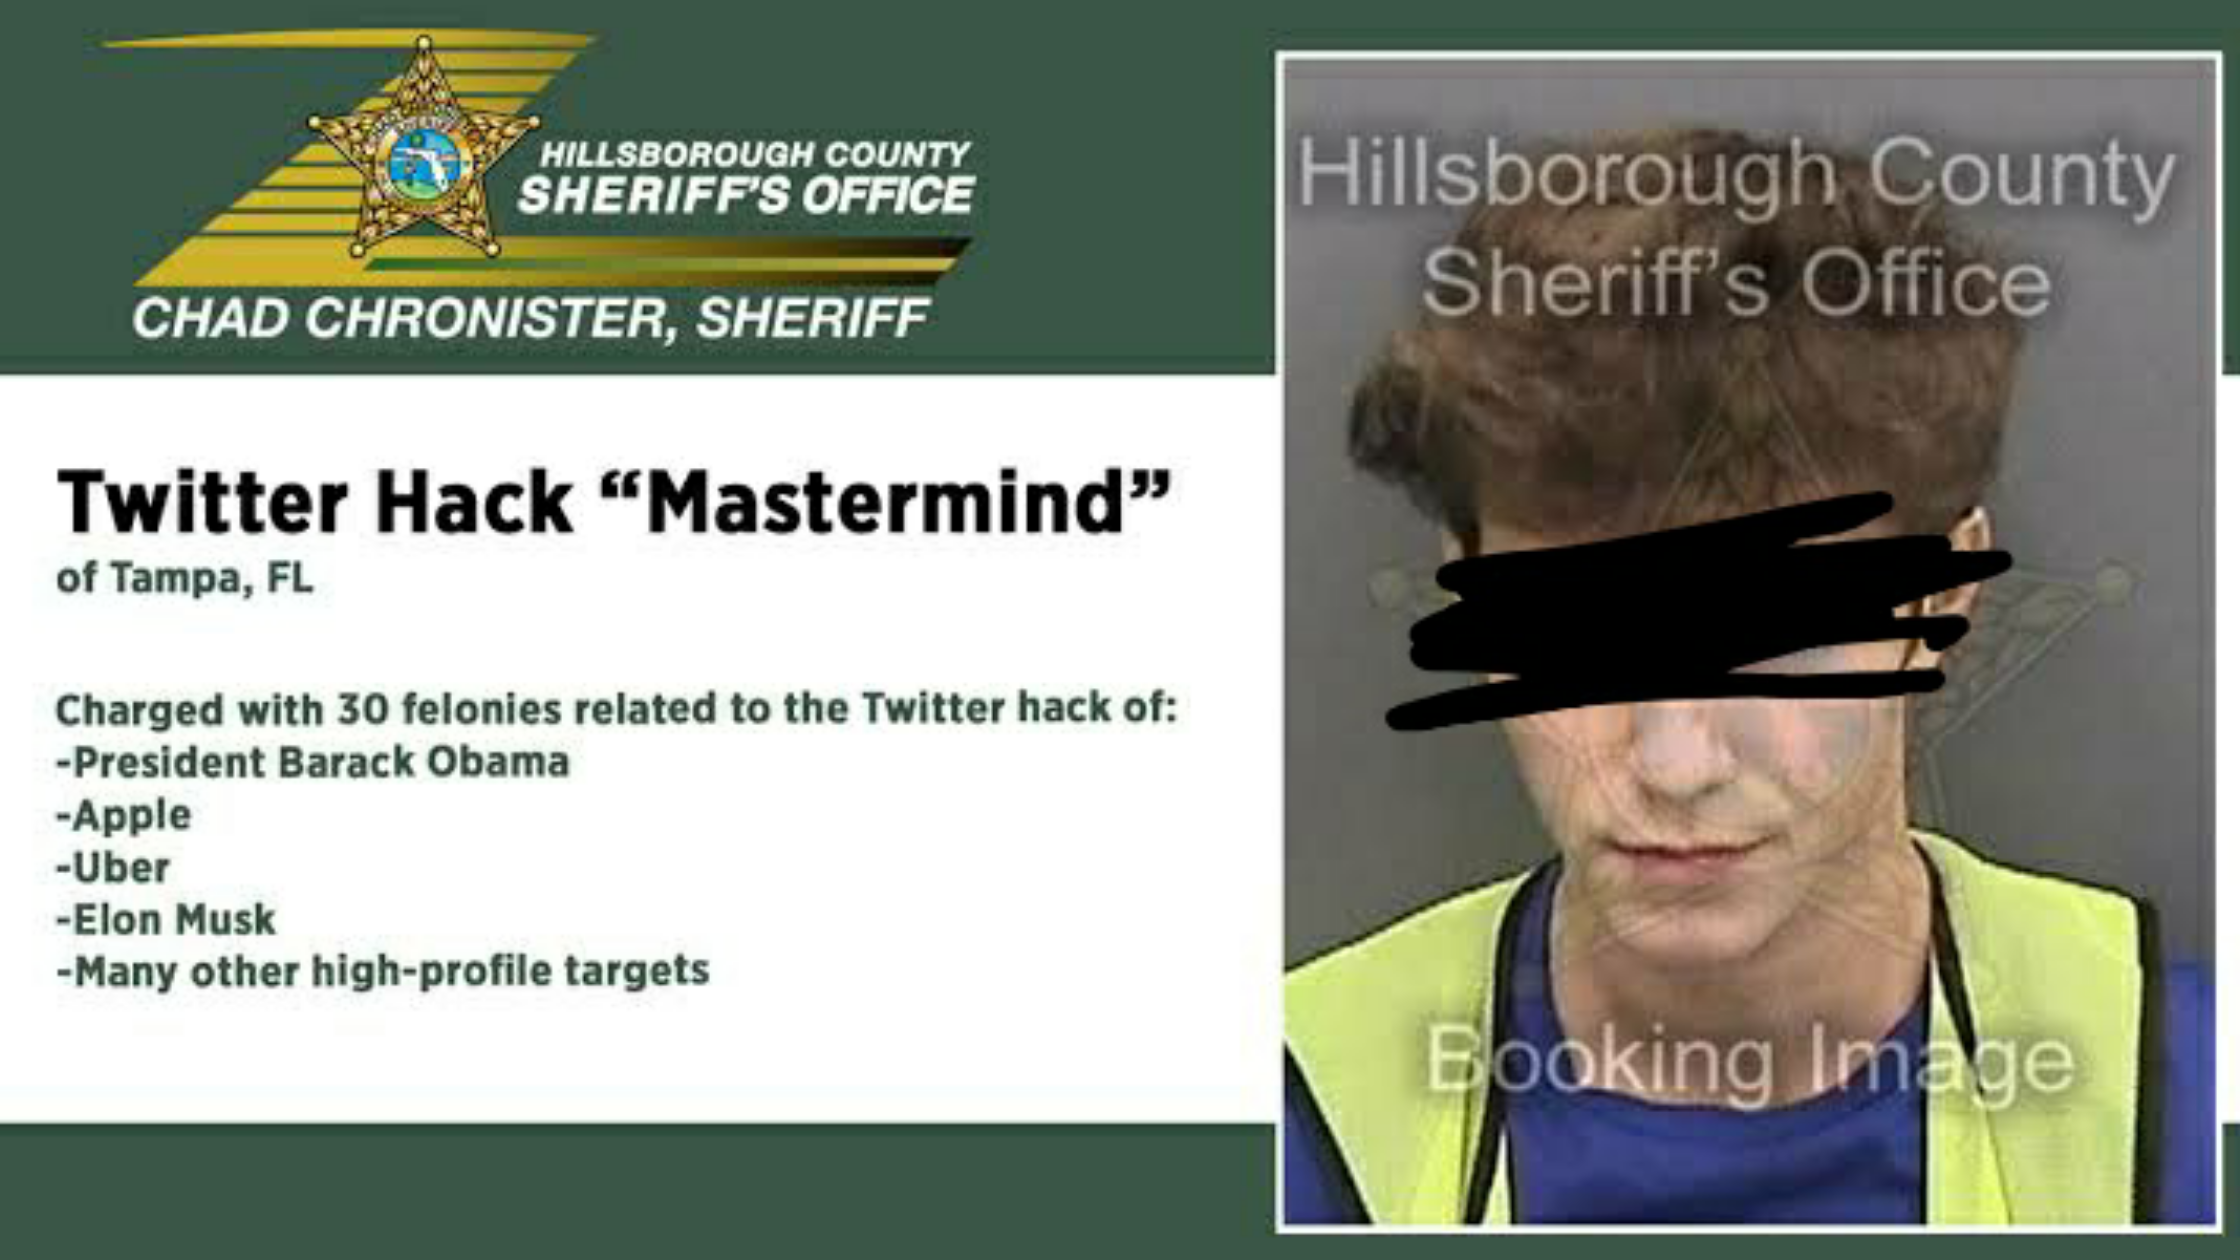 17 Year Old Twitter 'Bitcoin' Hacker Arrested